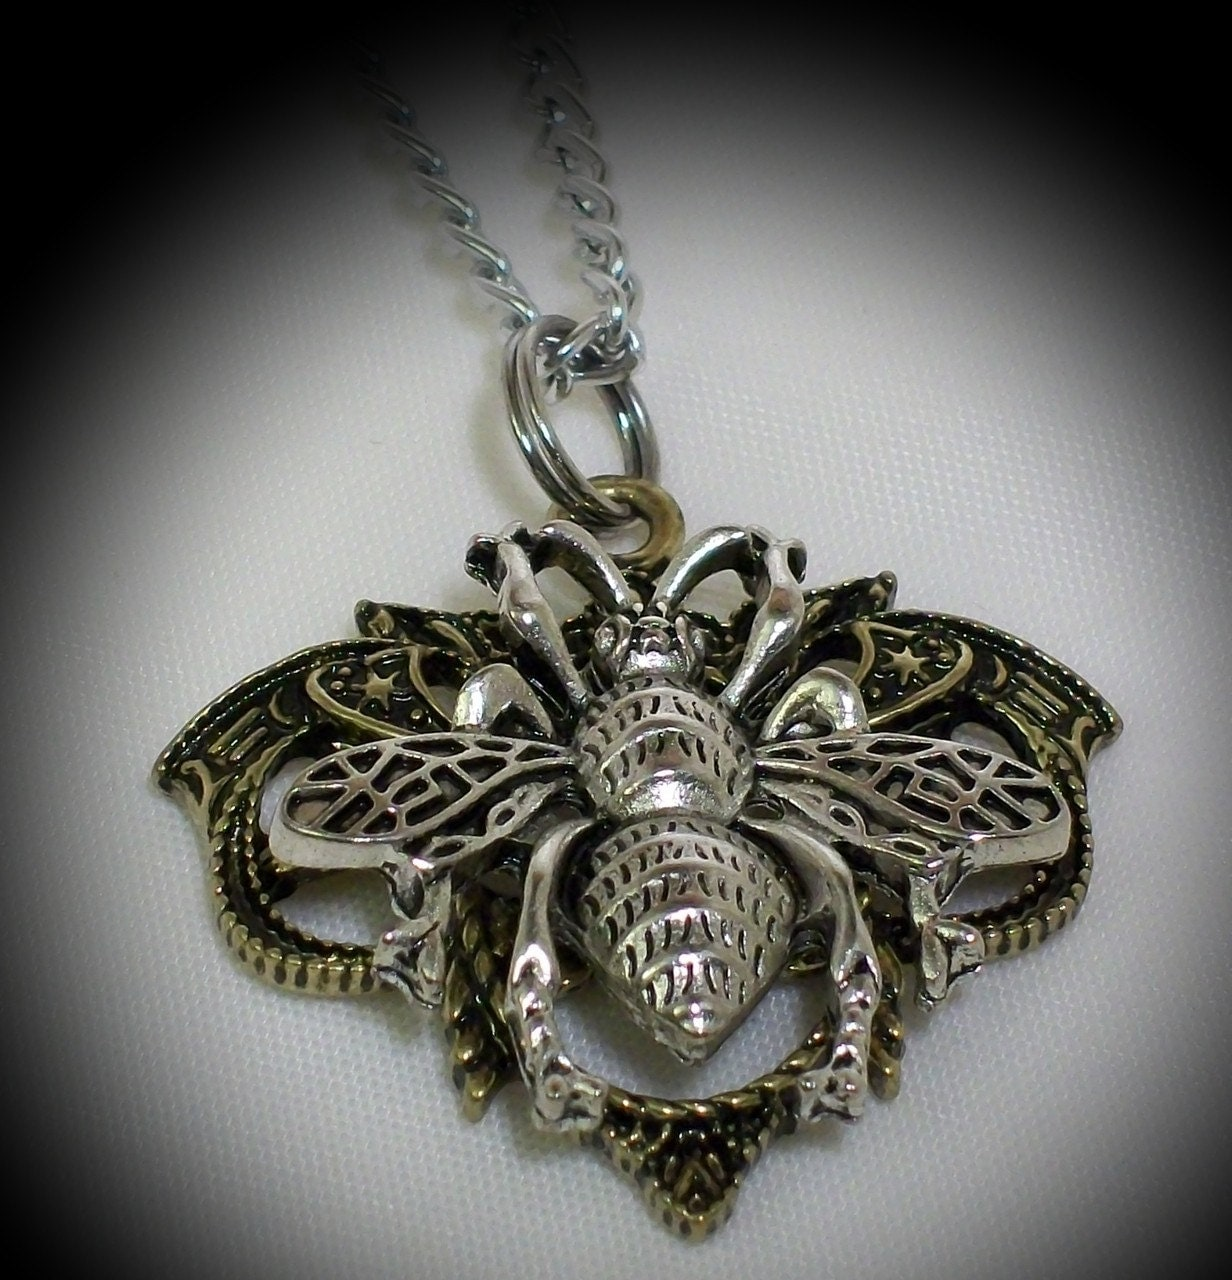 Queen Bee Dragon's Vein Necklace by leighswiccanboutique on Etsy from etsy.com